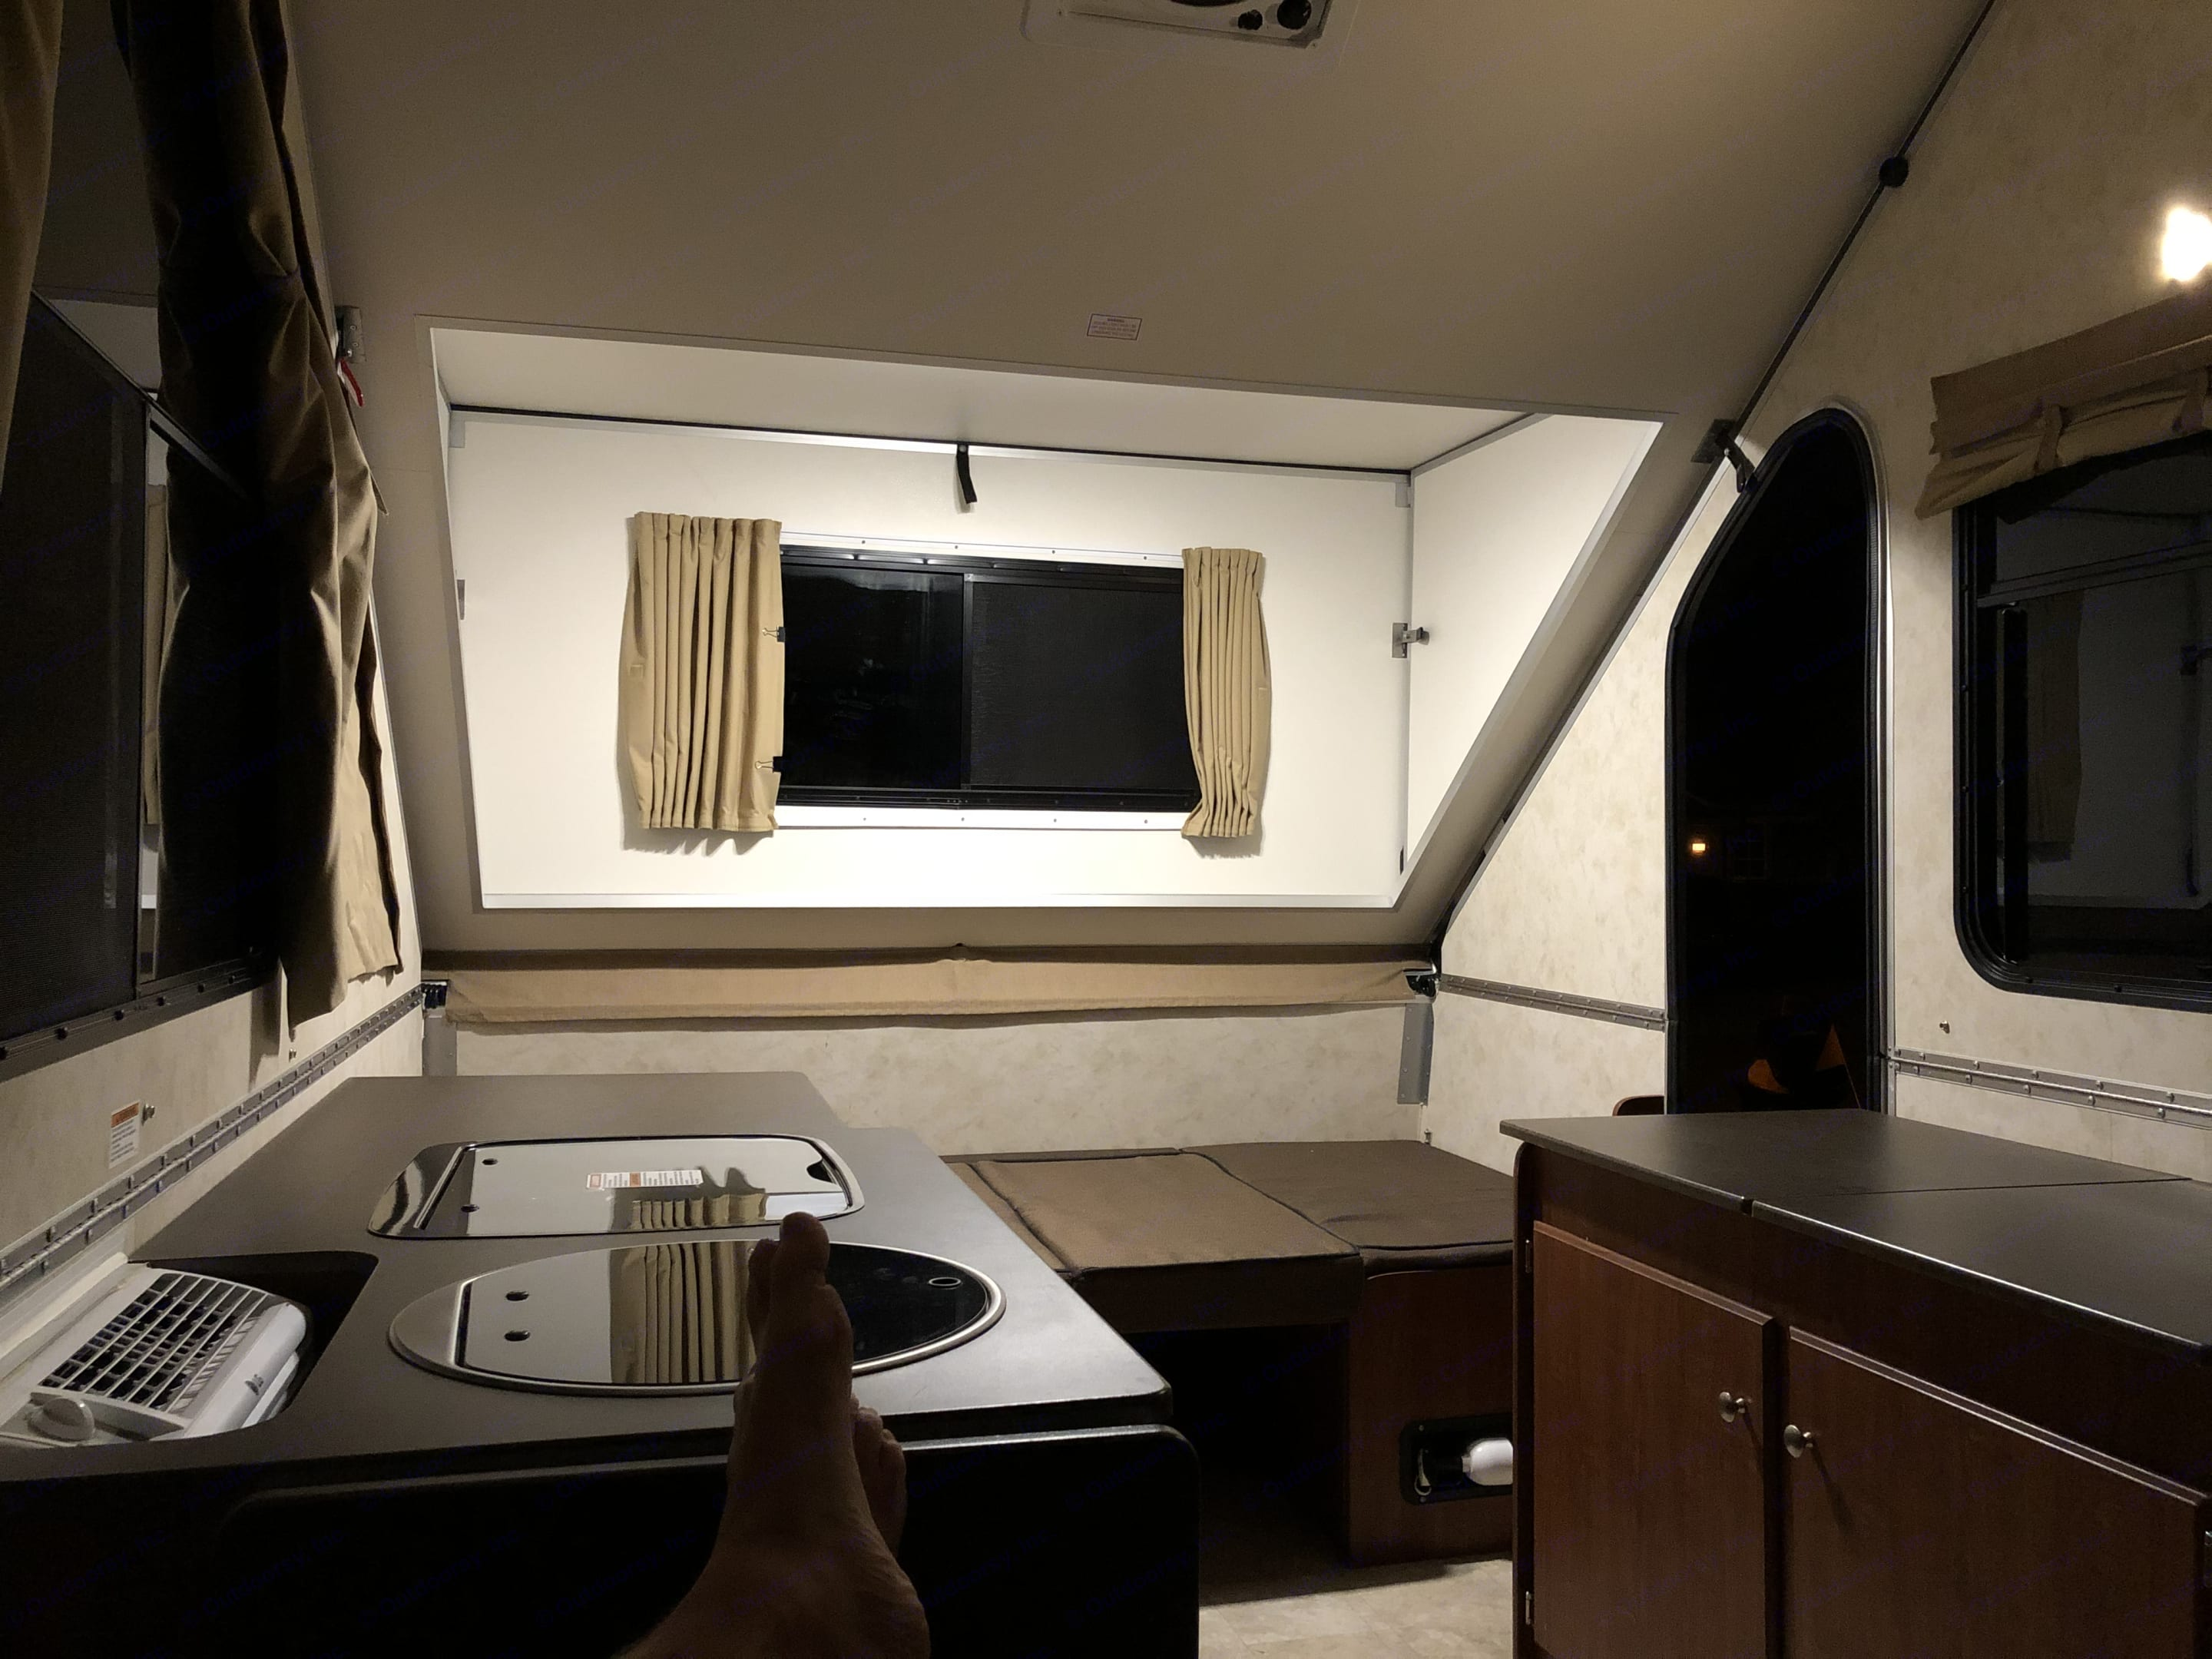 AC, sink, range to the left. Bed at other end converts to a table.. A-Liner Expedition 2017